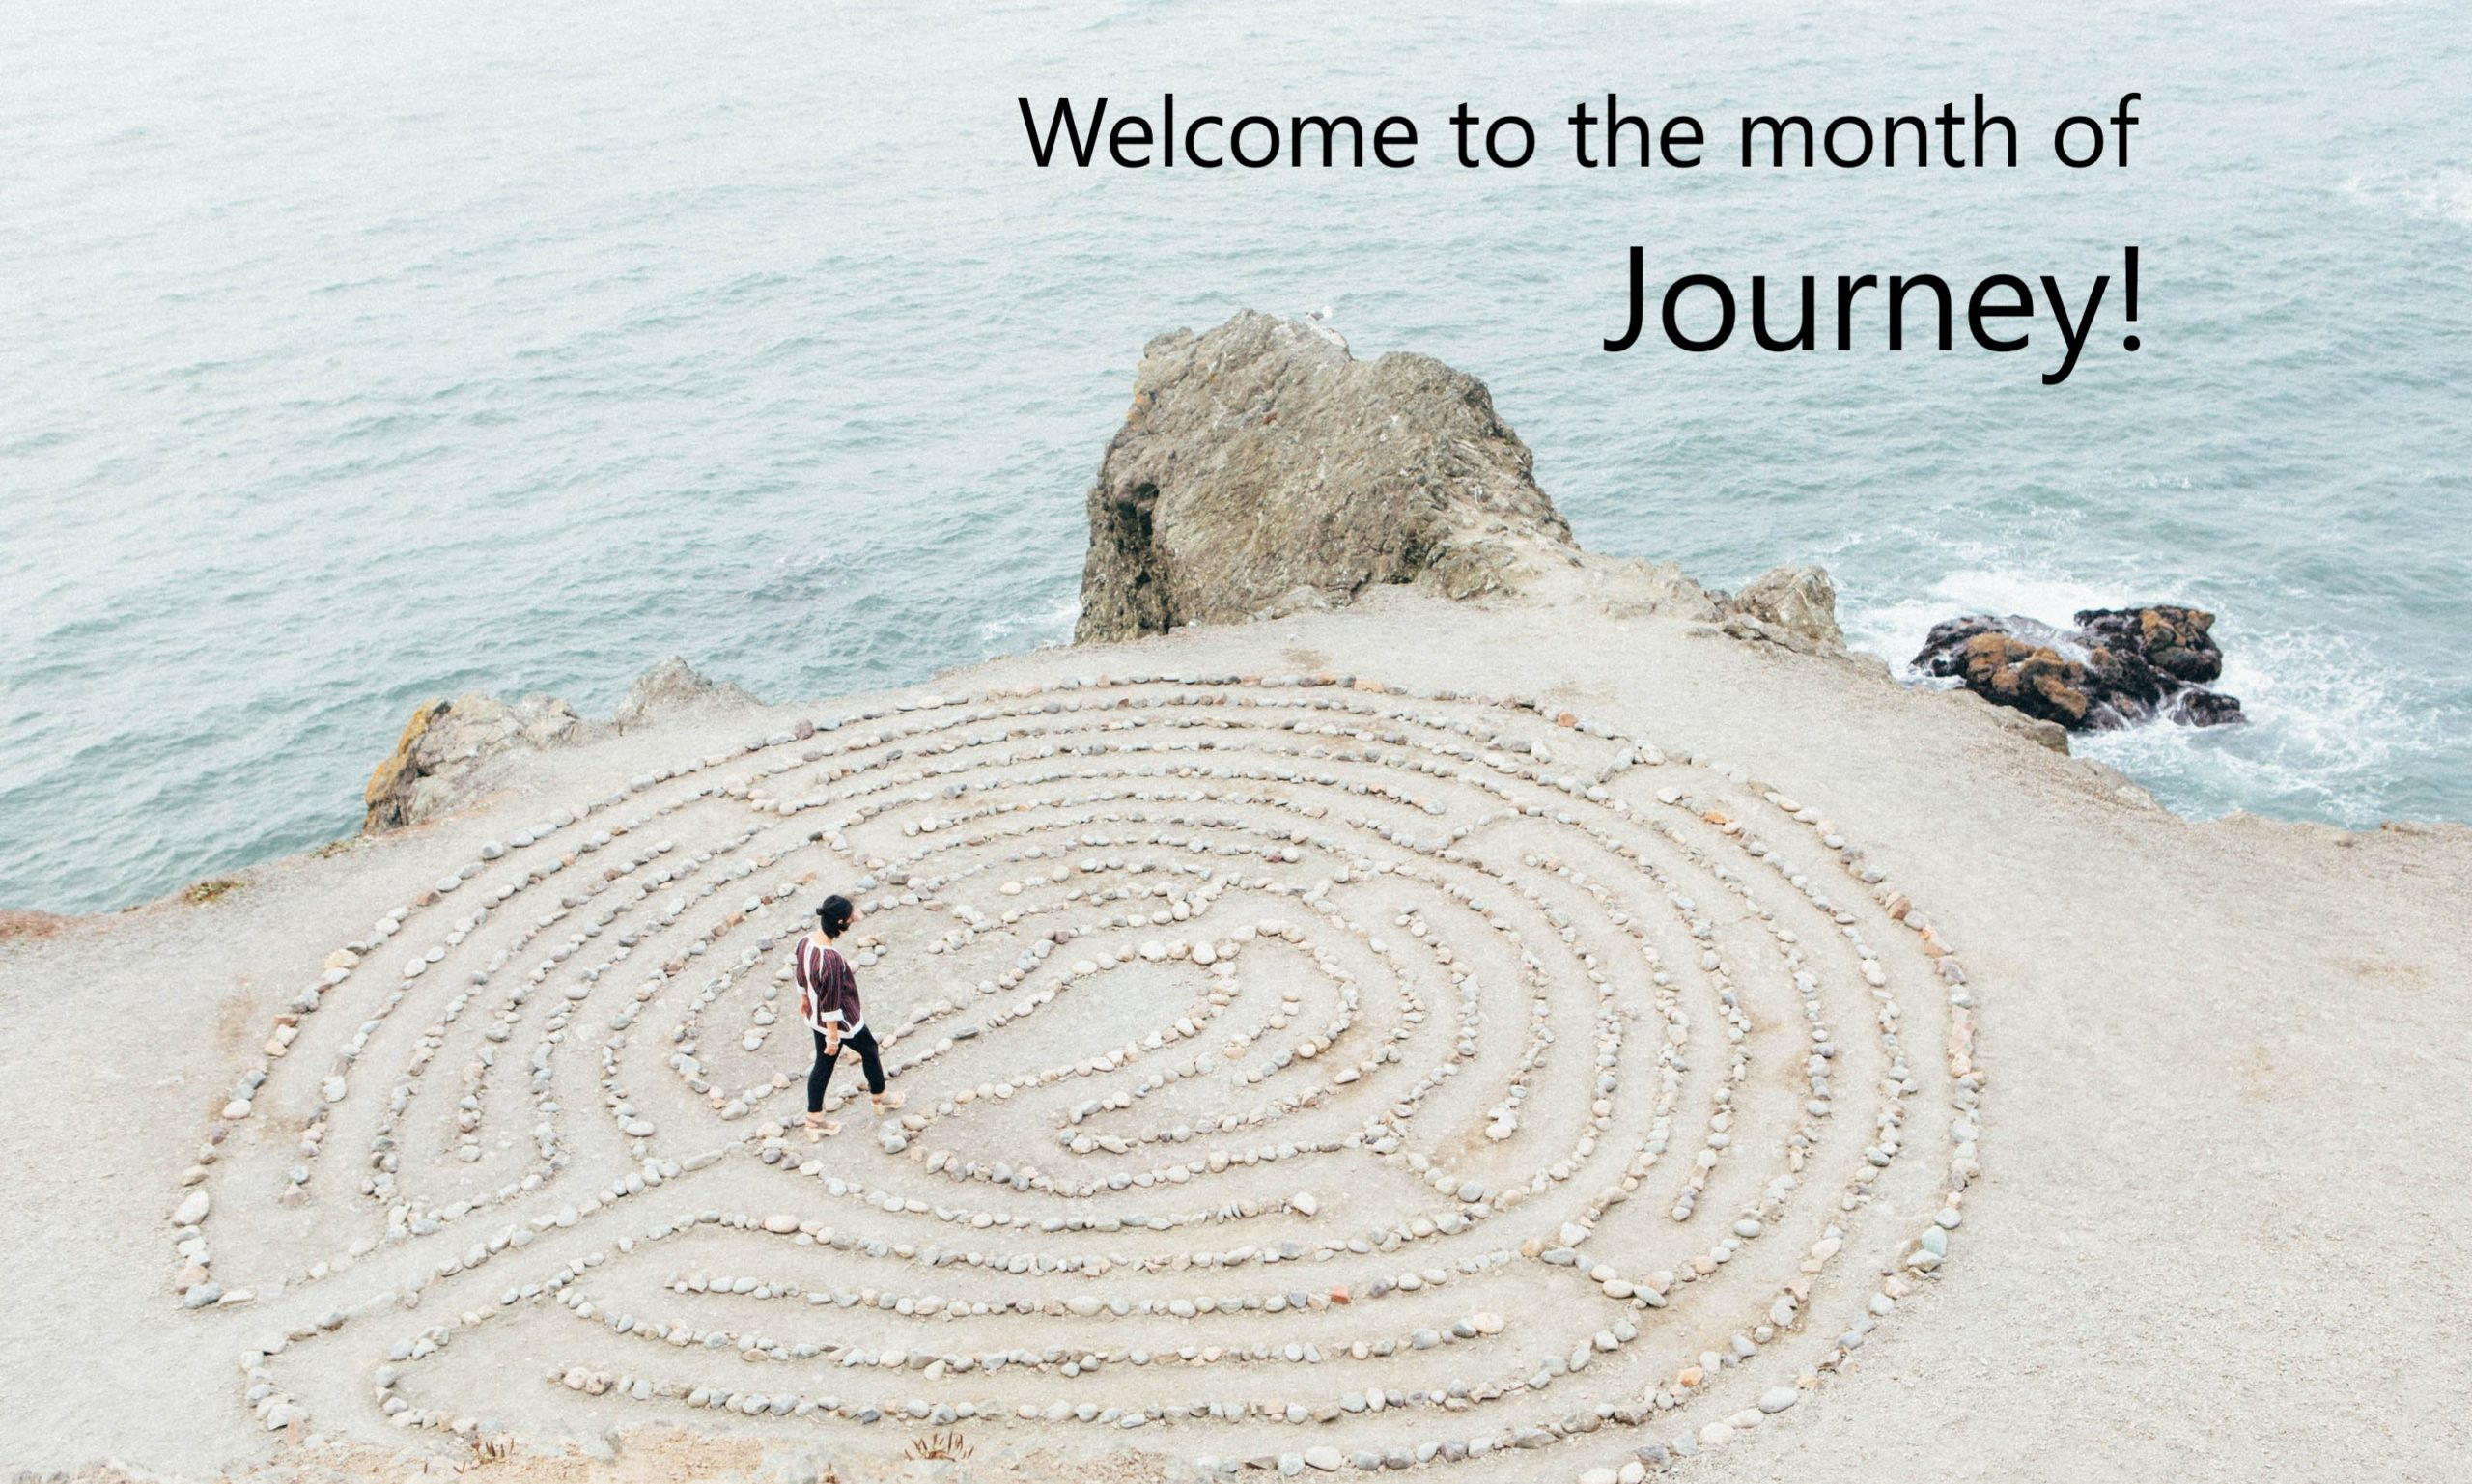 Labyrinth by the ocean, text: Welcome to the month of Journey